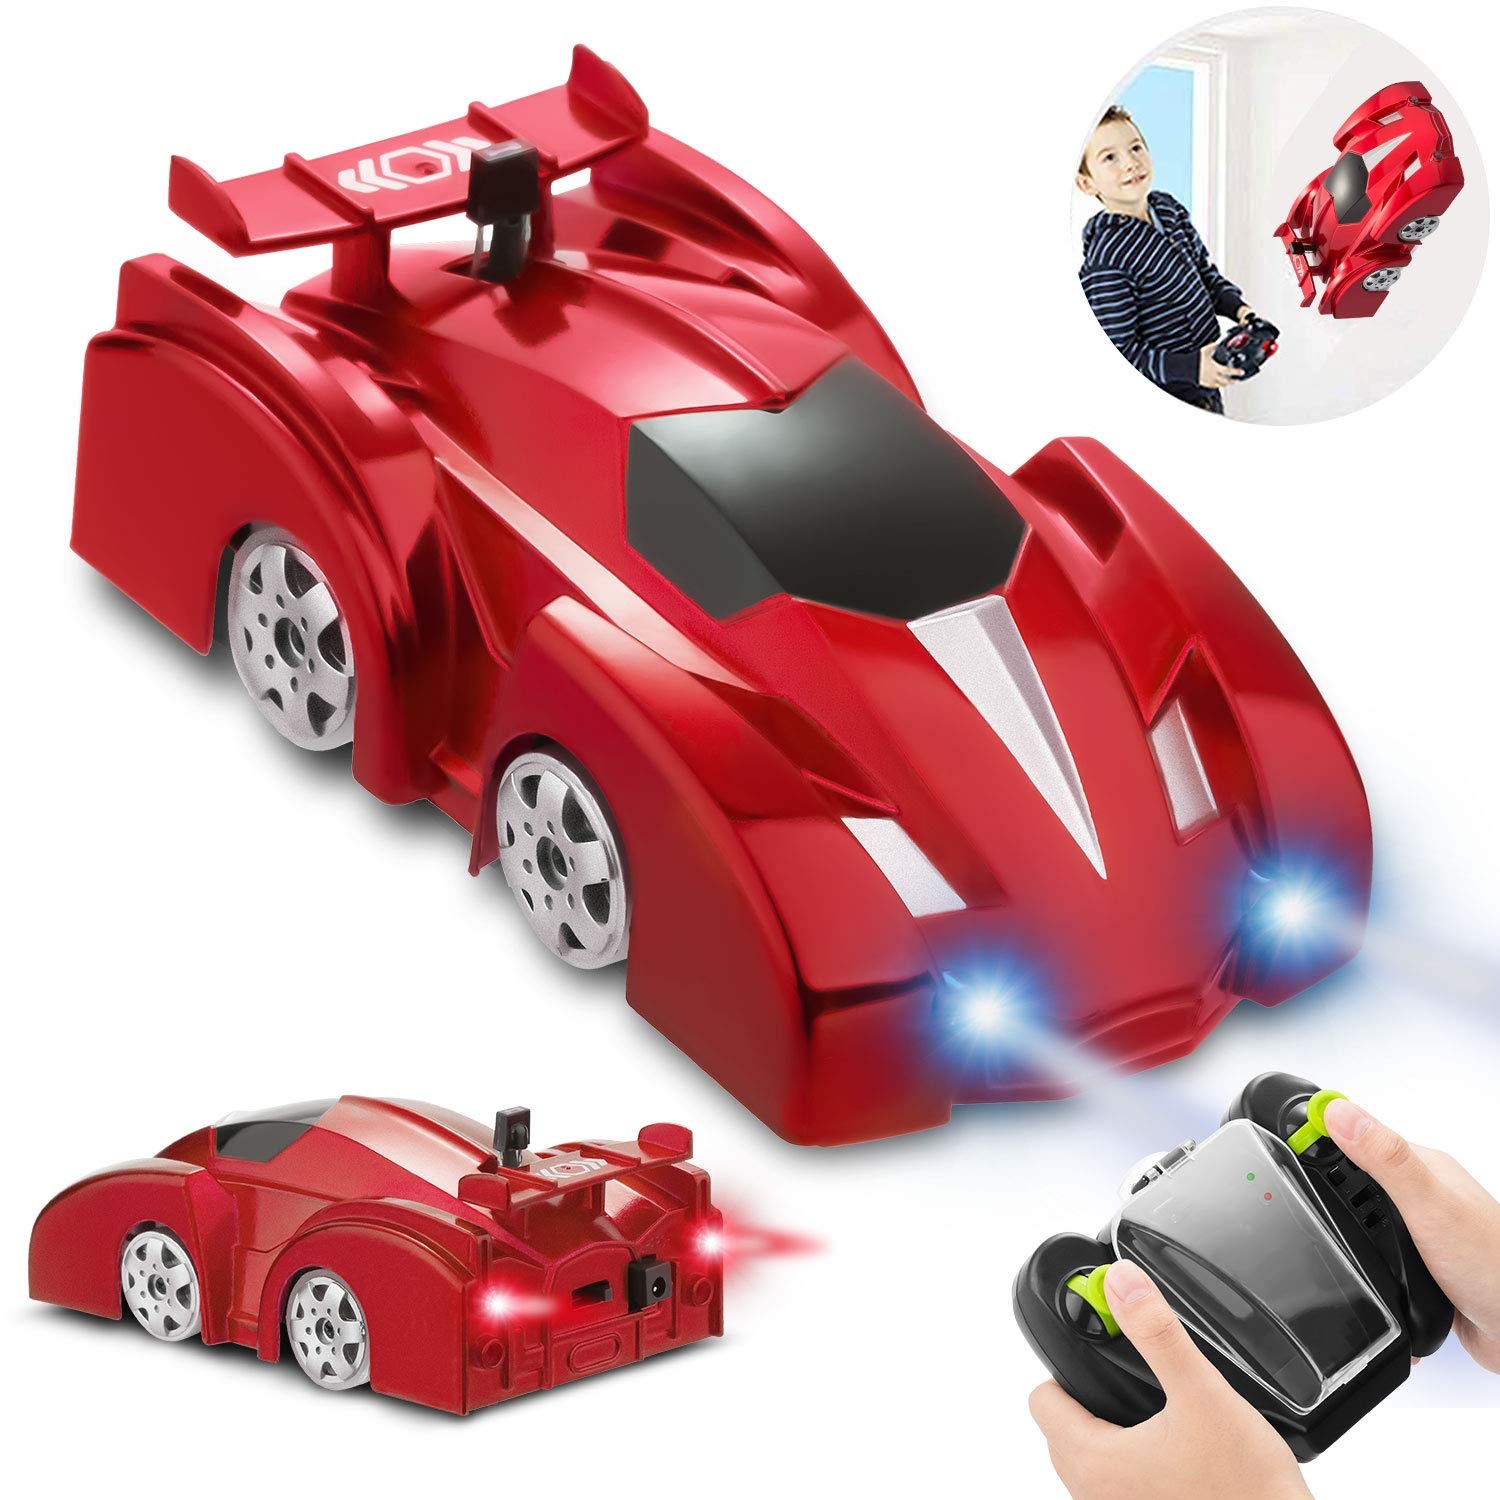 Remote Control Car, RC Cars Toys Dual Mode Durable Car with Strong Suction Power, 360°Rotating Stunt Rechargeable High-Speed Vehicle with LED Lights, Ideal Xmas Gift for Boys Girls by Miluo Tech